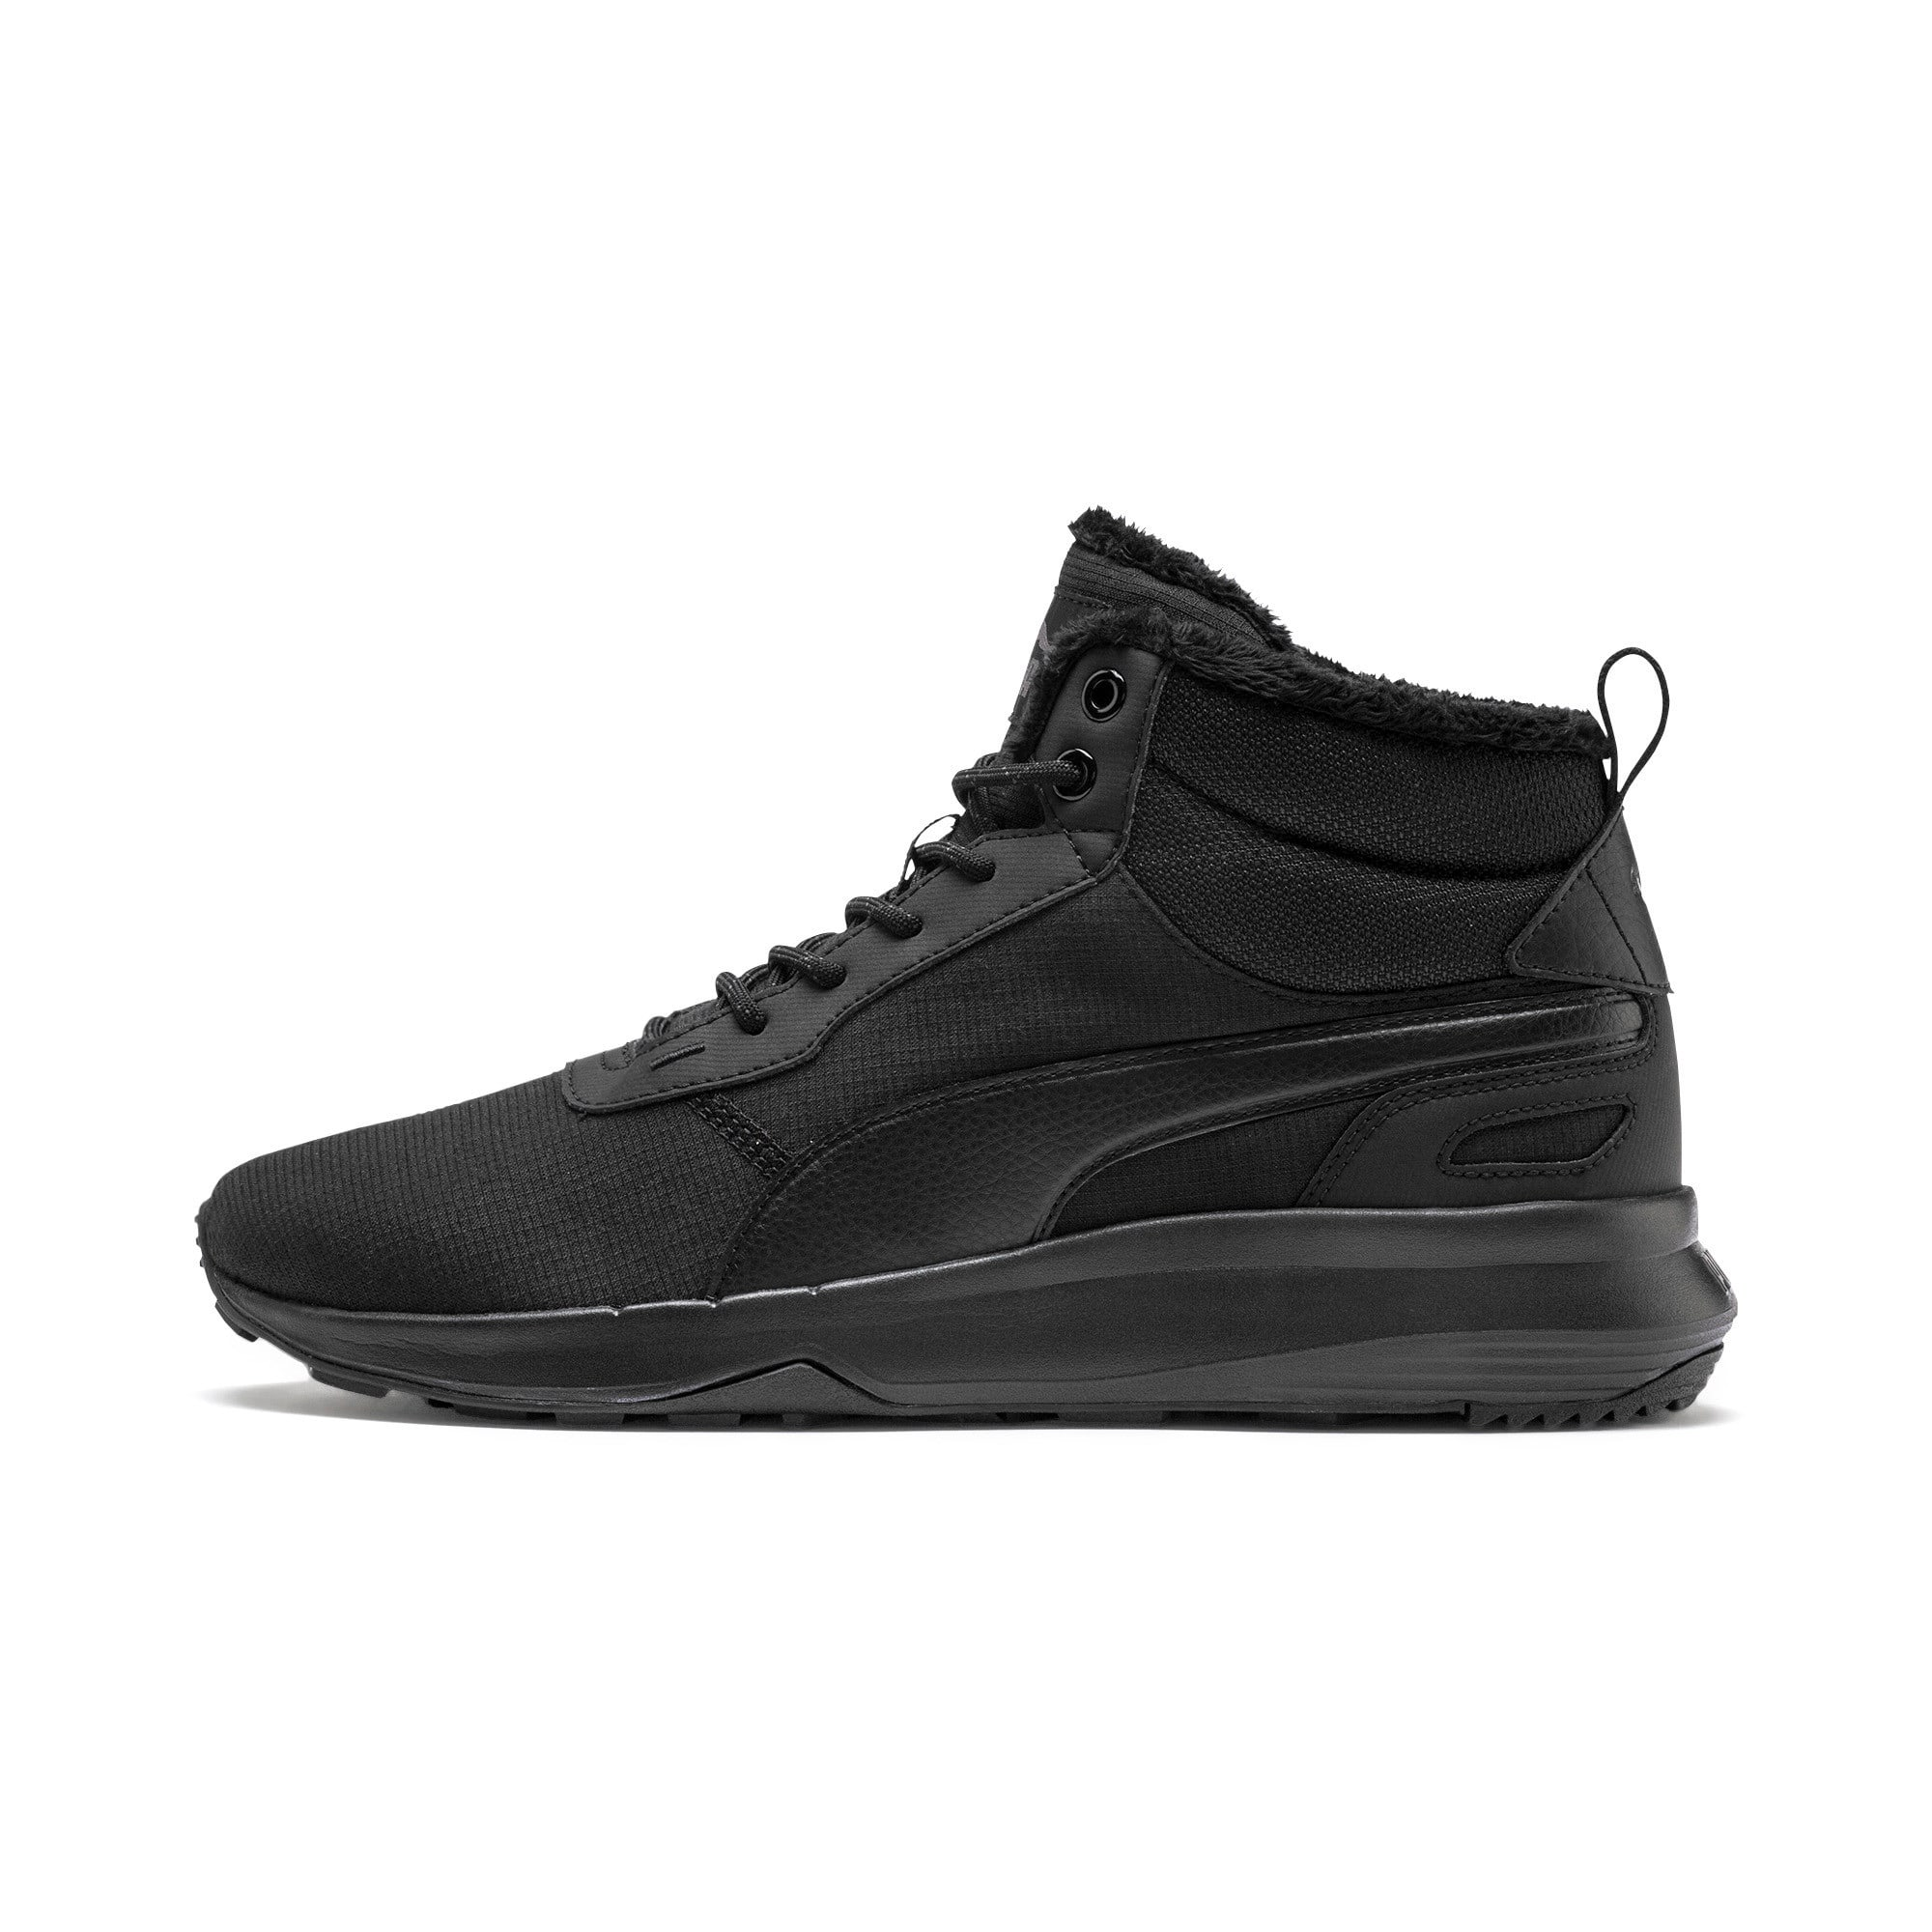 Thumbnail 1 of Activate Mid-Cut Boots, Puma Black-Puma Black, medium